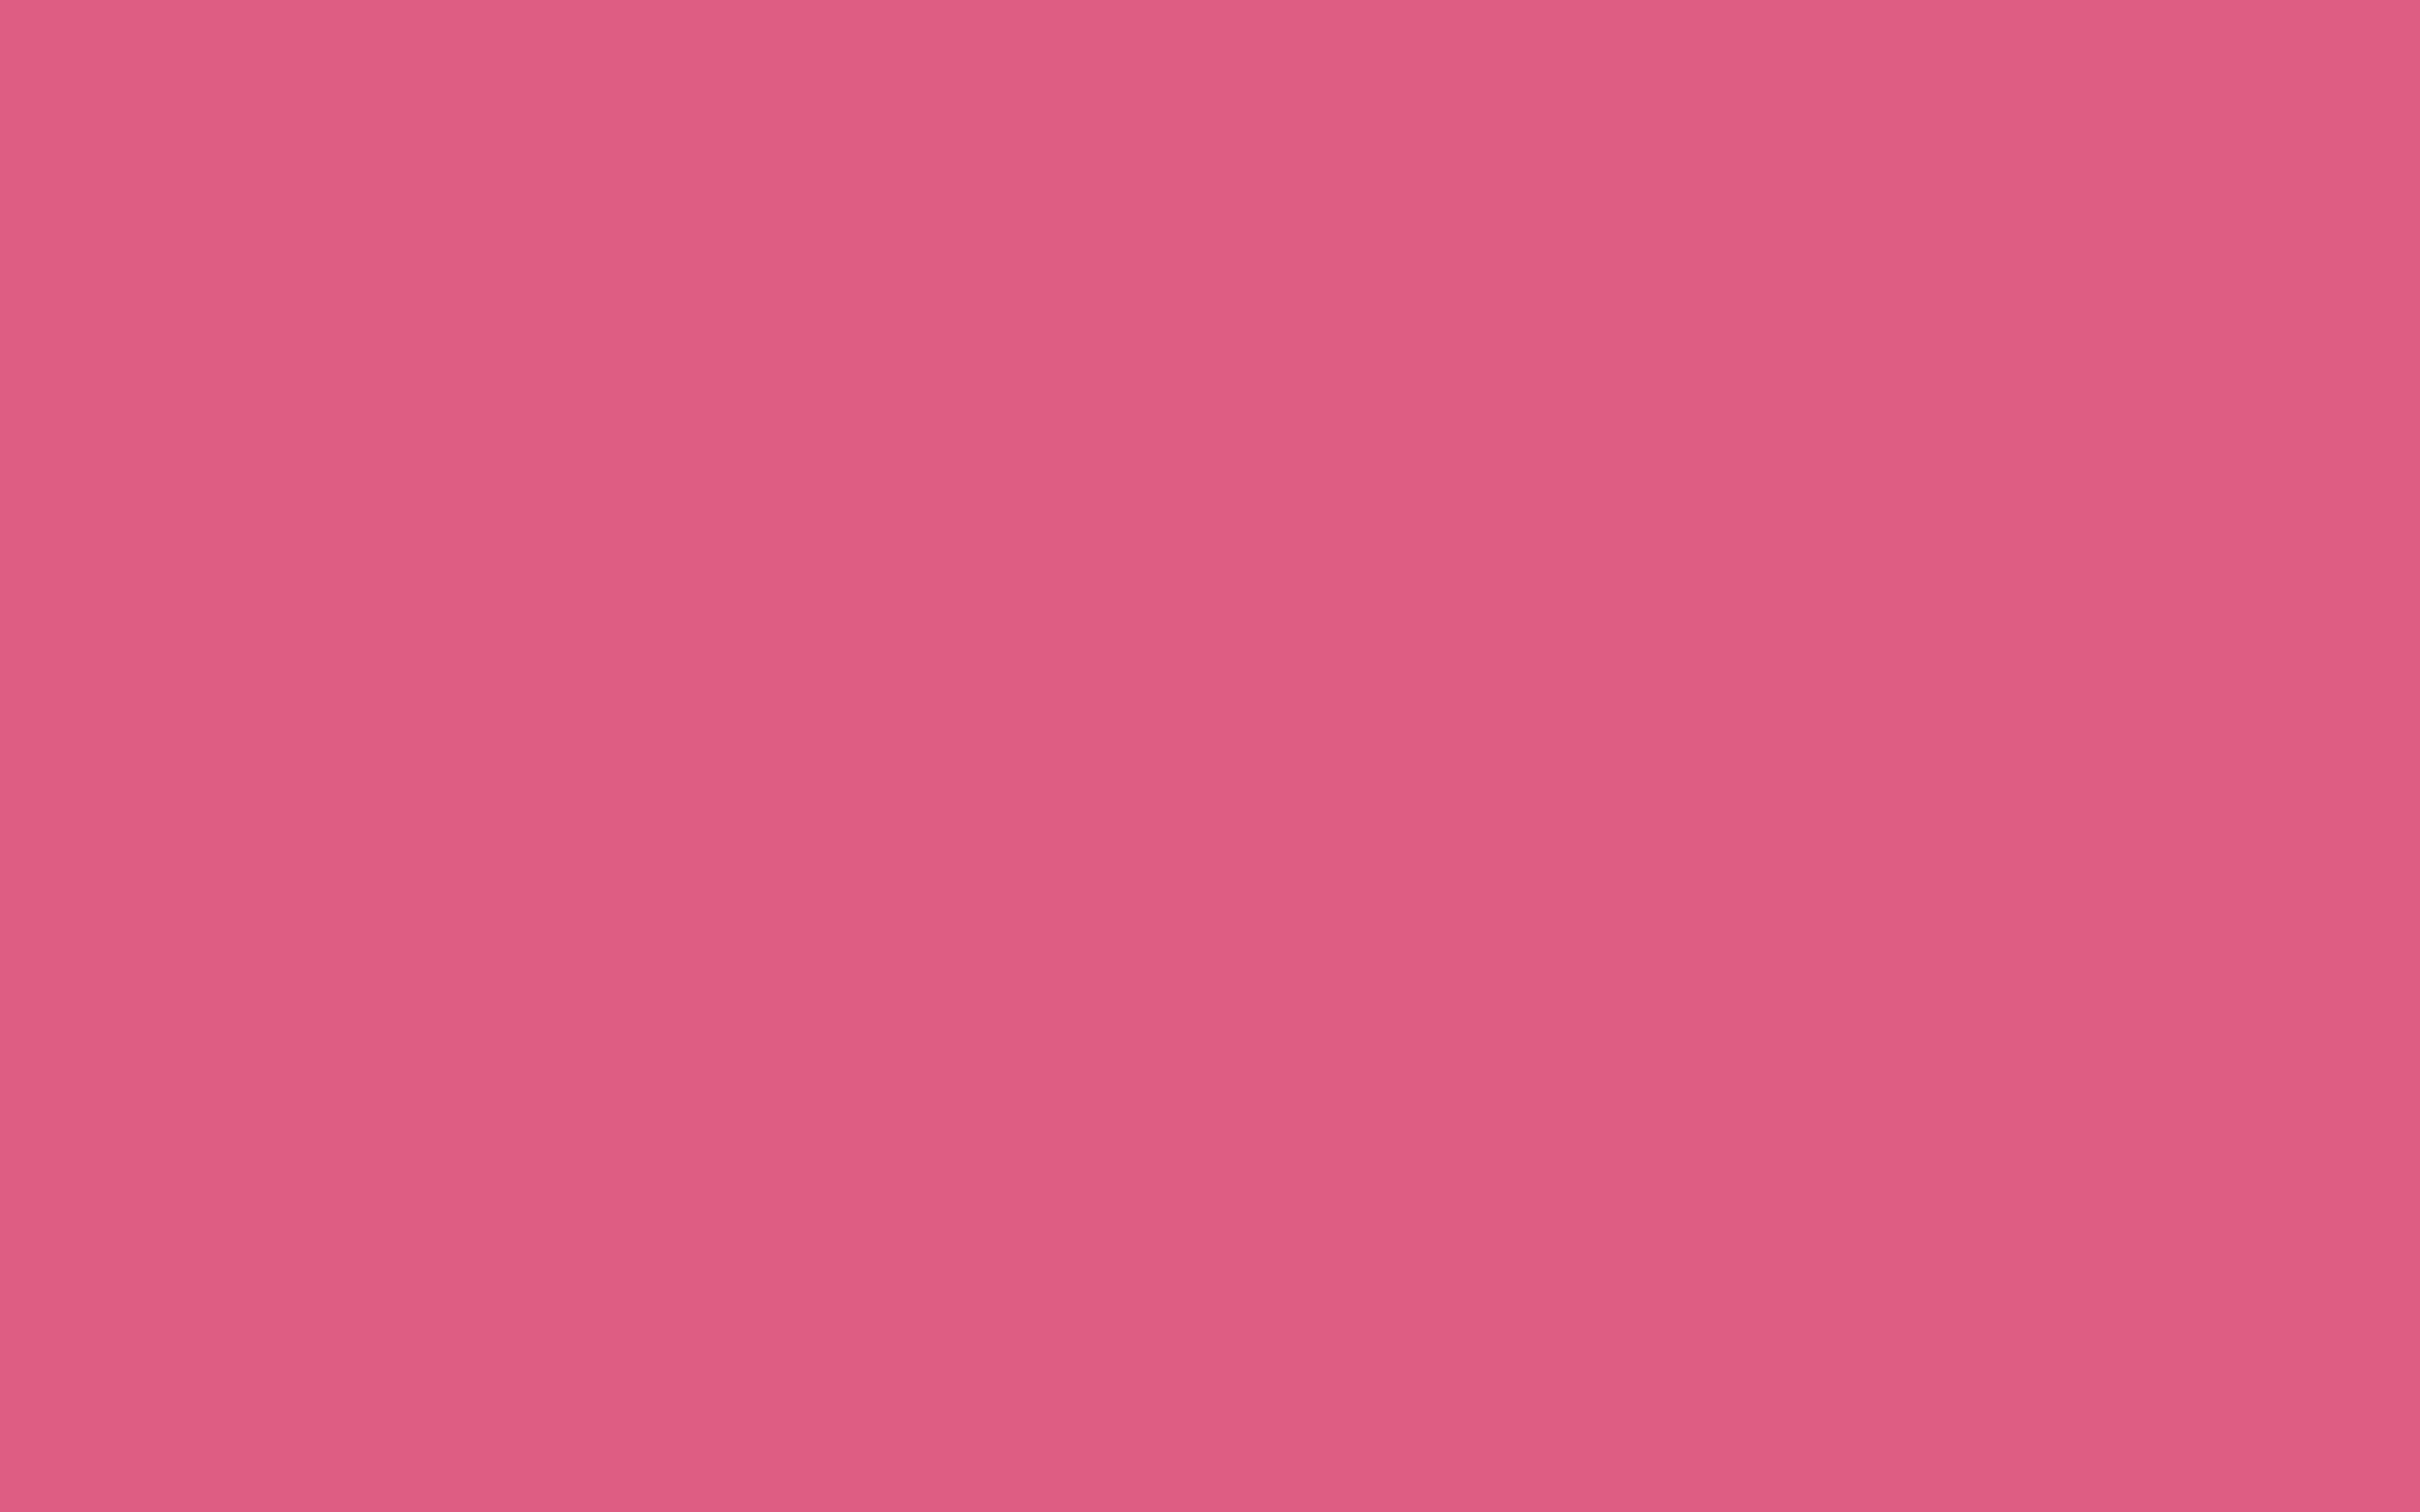 2560x1600 Blush Solid Color Background